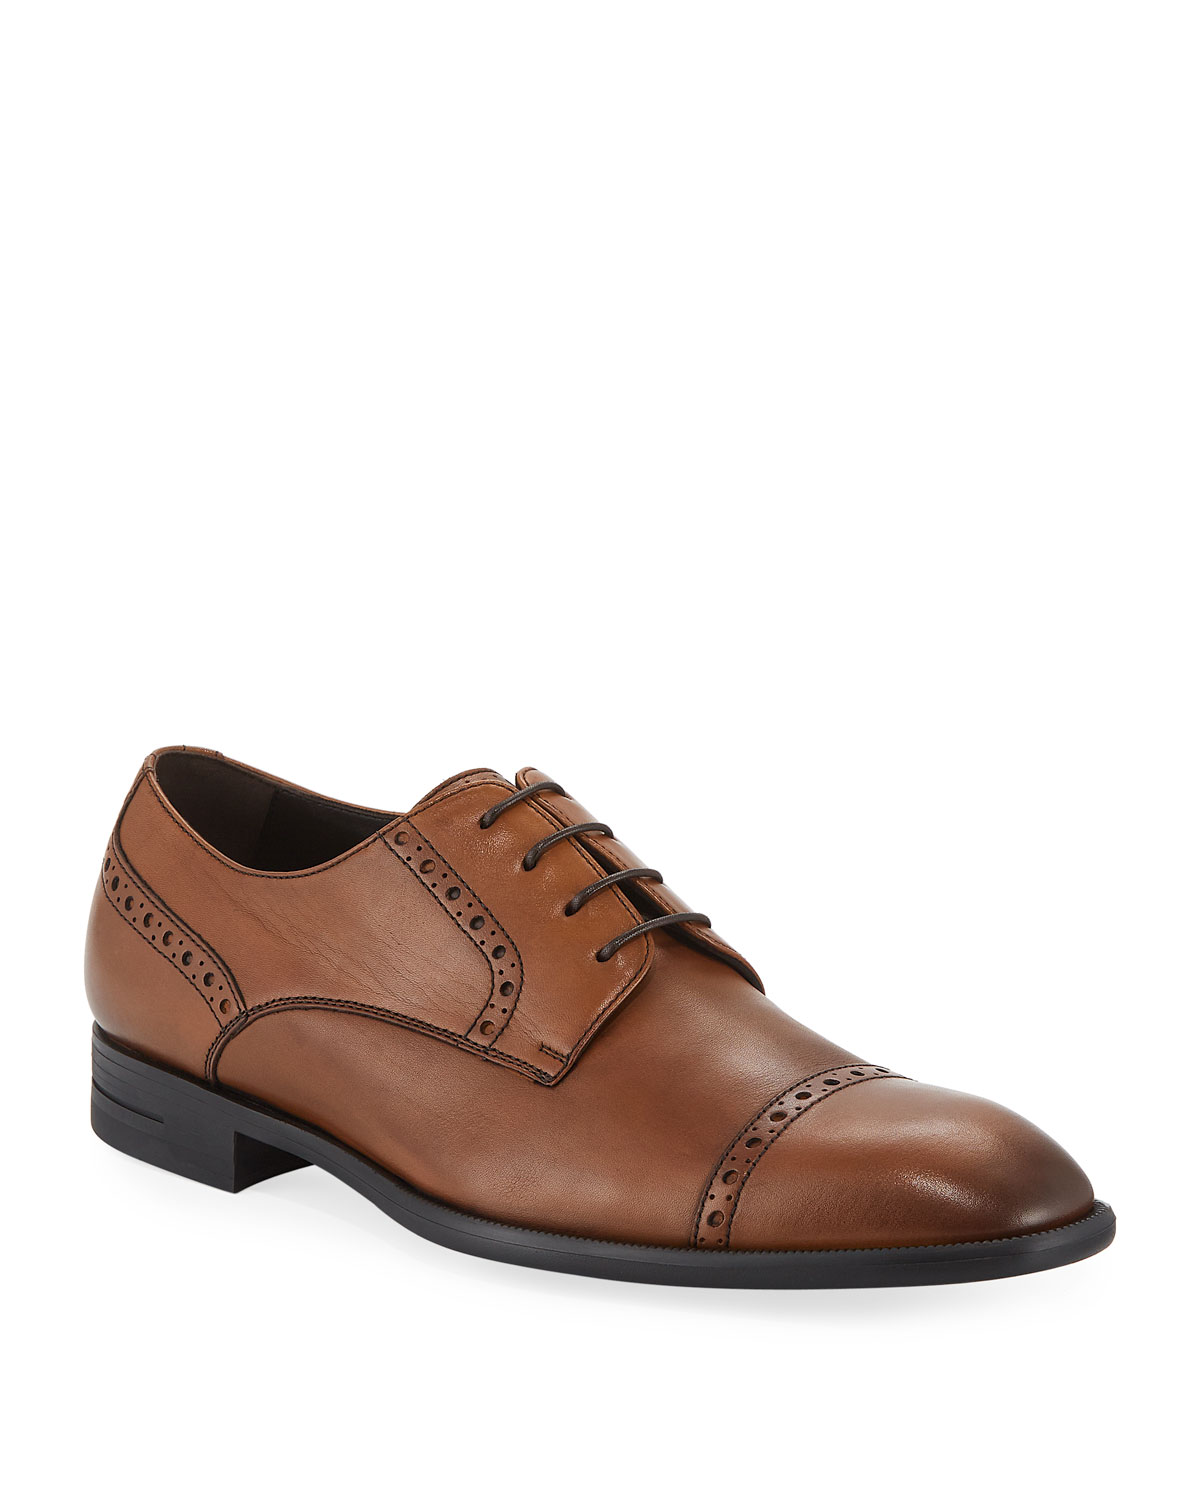 Ermenegildo Zegna Men's Shoes New Flex Cap-Toe Derby Shoes Men's 9f2f0b